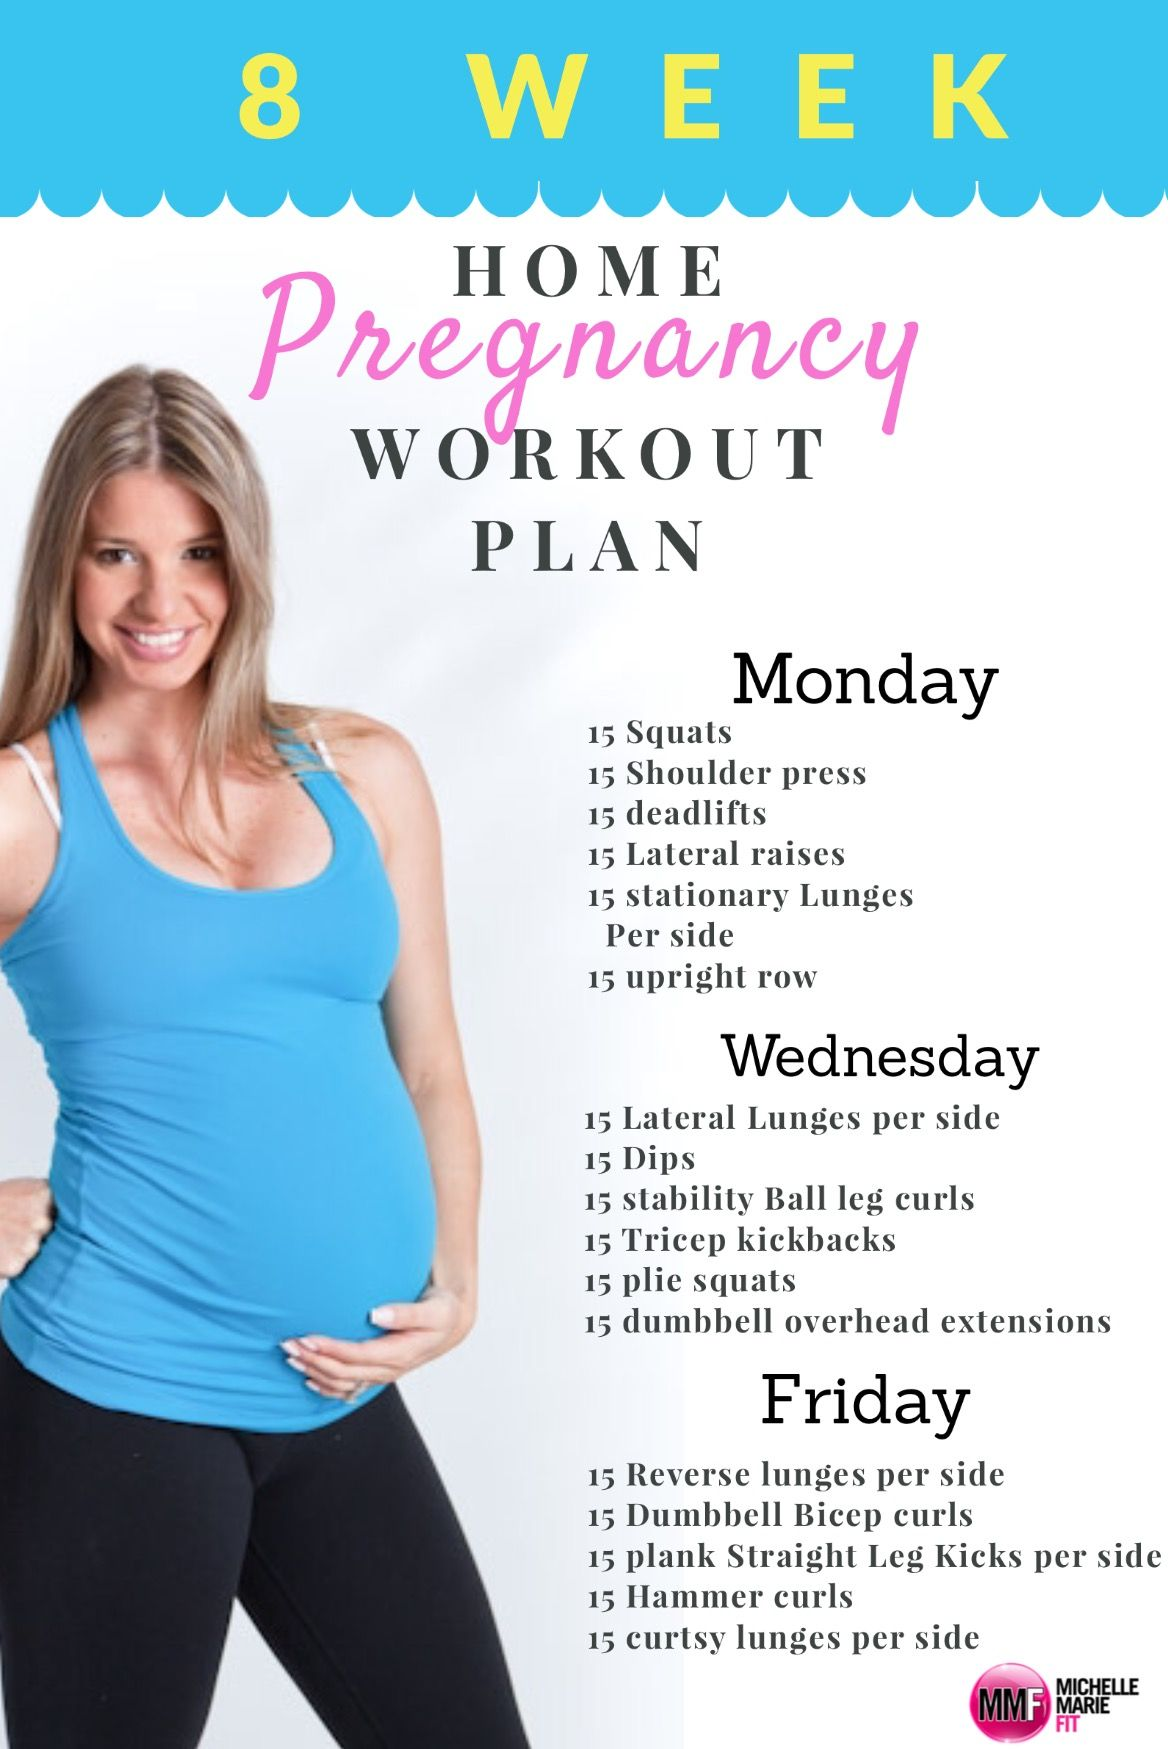 Workouts must be challenging enough to build lean, toned muscle. Most pregnancy programs are too vague, short and not challenging enough. Though pilates and yoga are great and I love them, they are not as conducive to building muscle as resistance training which is .